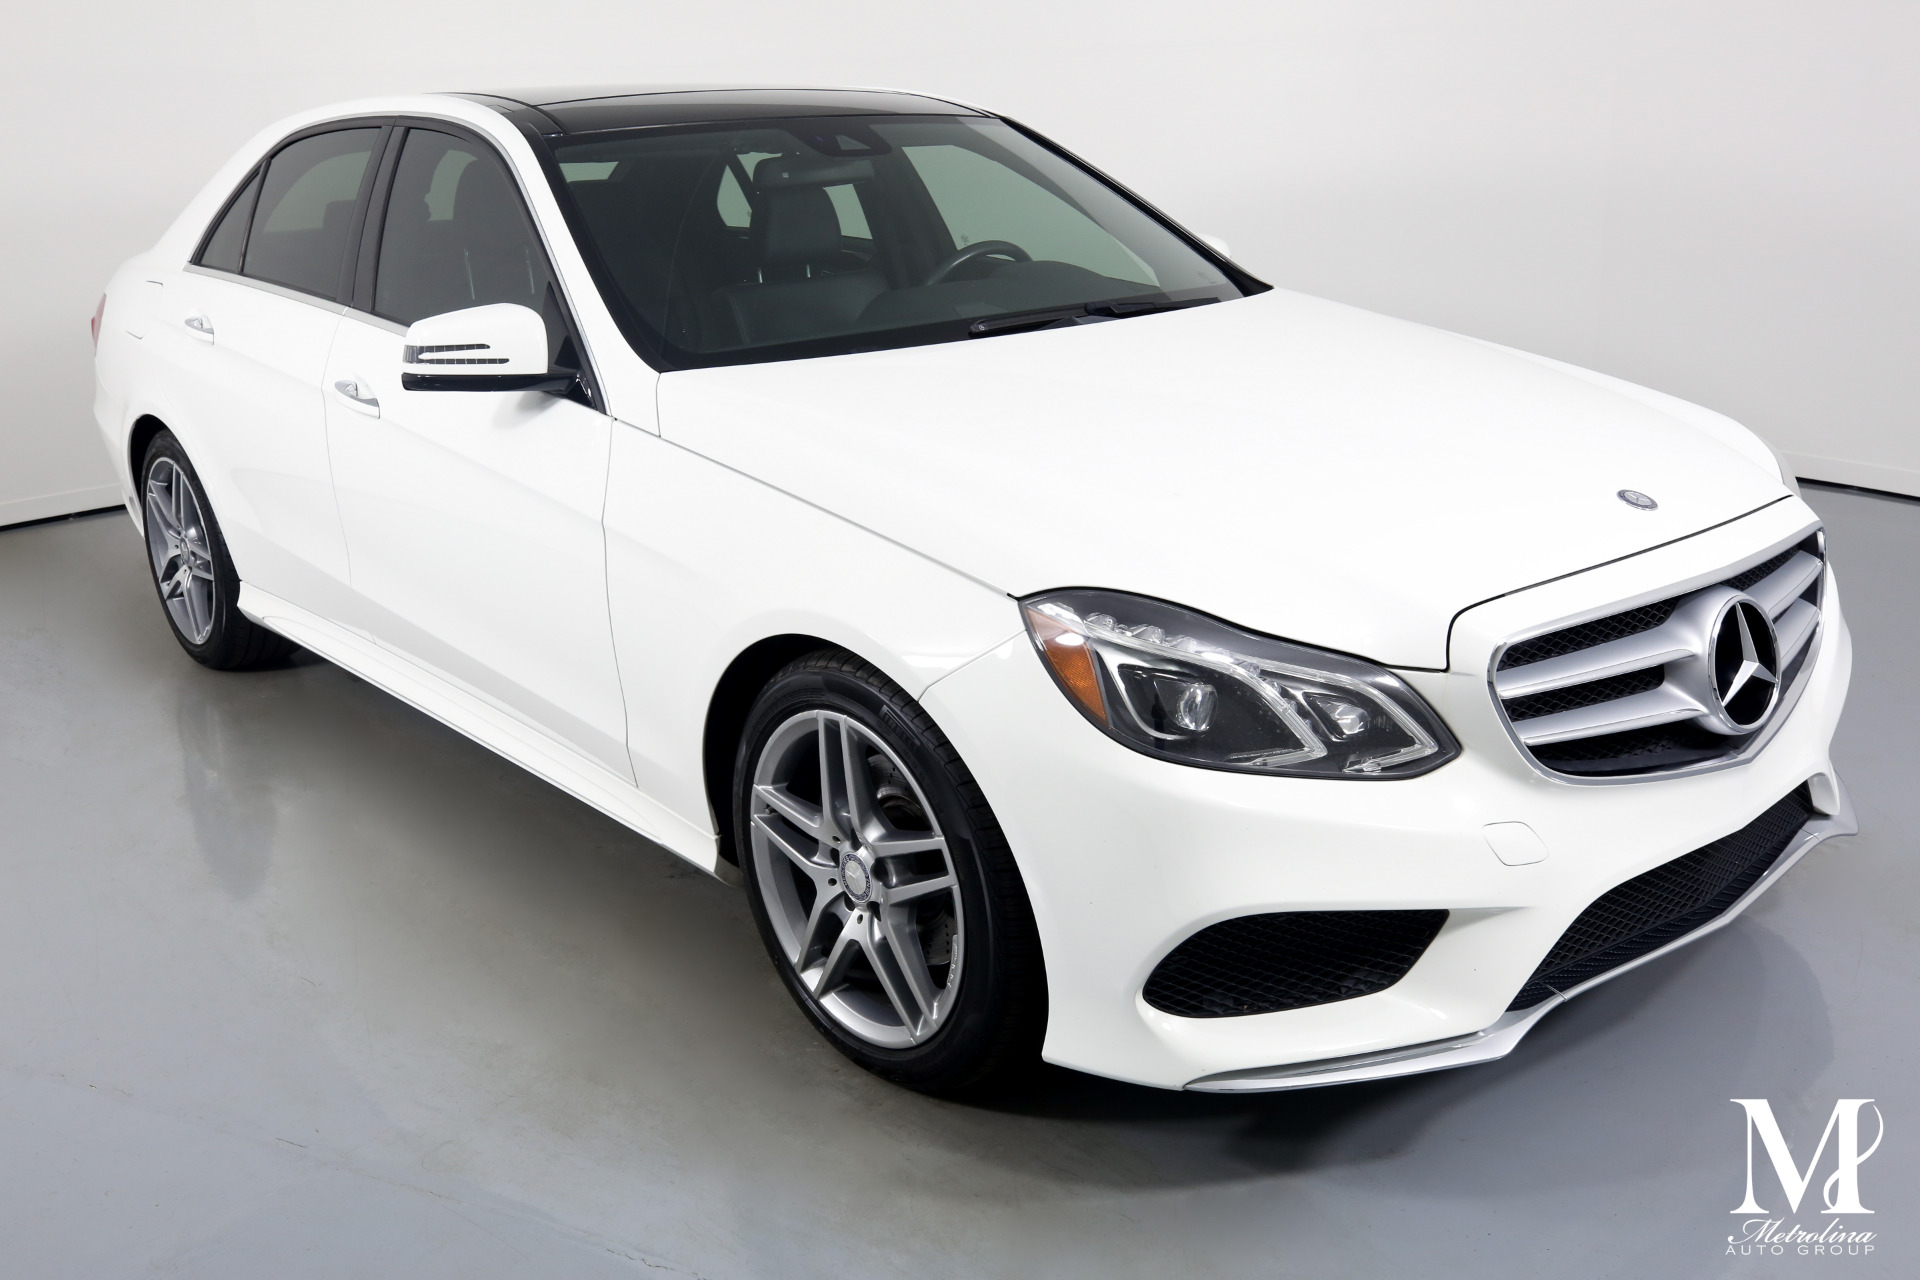 Used 2014 Mercedes-Benz E-Class E 350 Sport 4MATIC for sale $17,996 at Metrolina Auto Group in Charlotte NC 28217 - 2